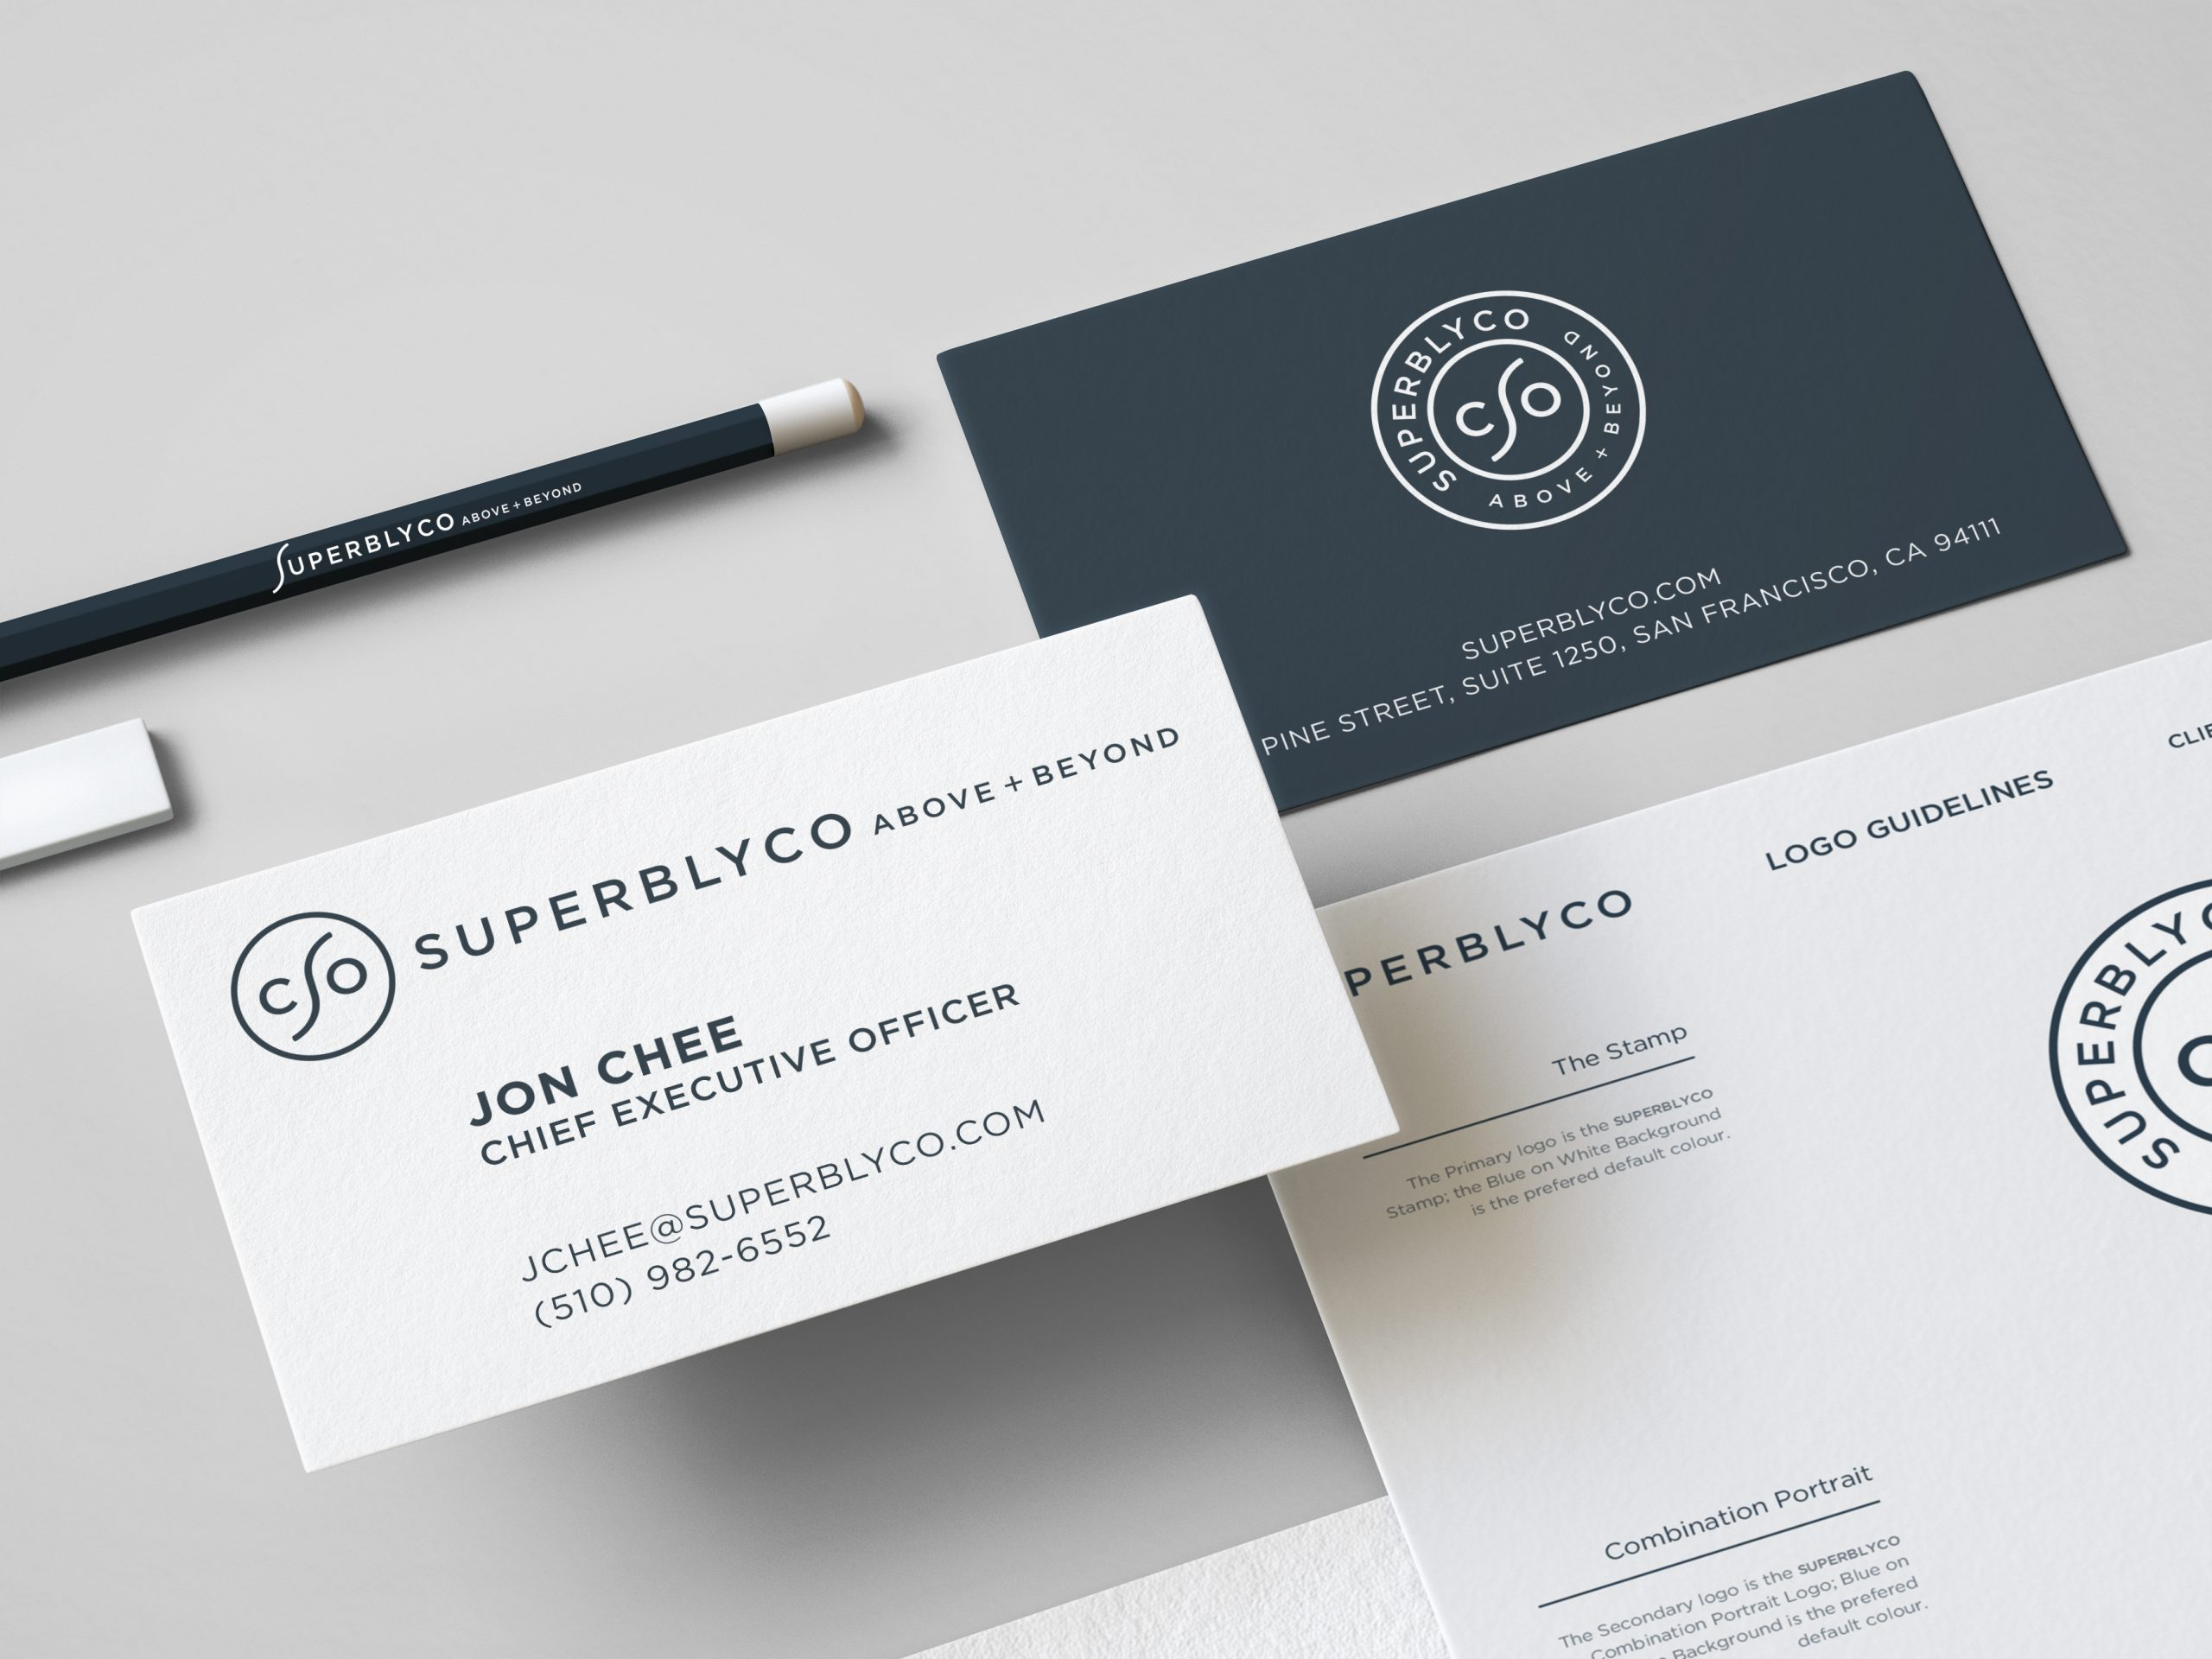 SuperblyCo Logo Brand Identity-Stationery design mockup 06 by the logo smith